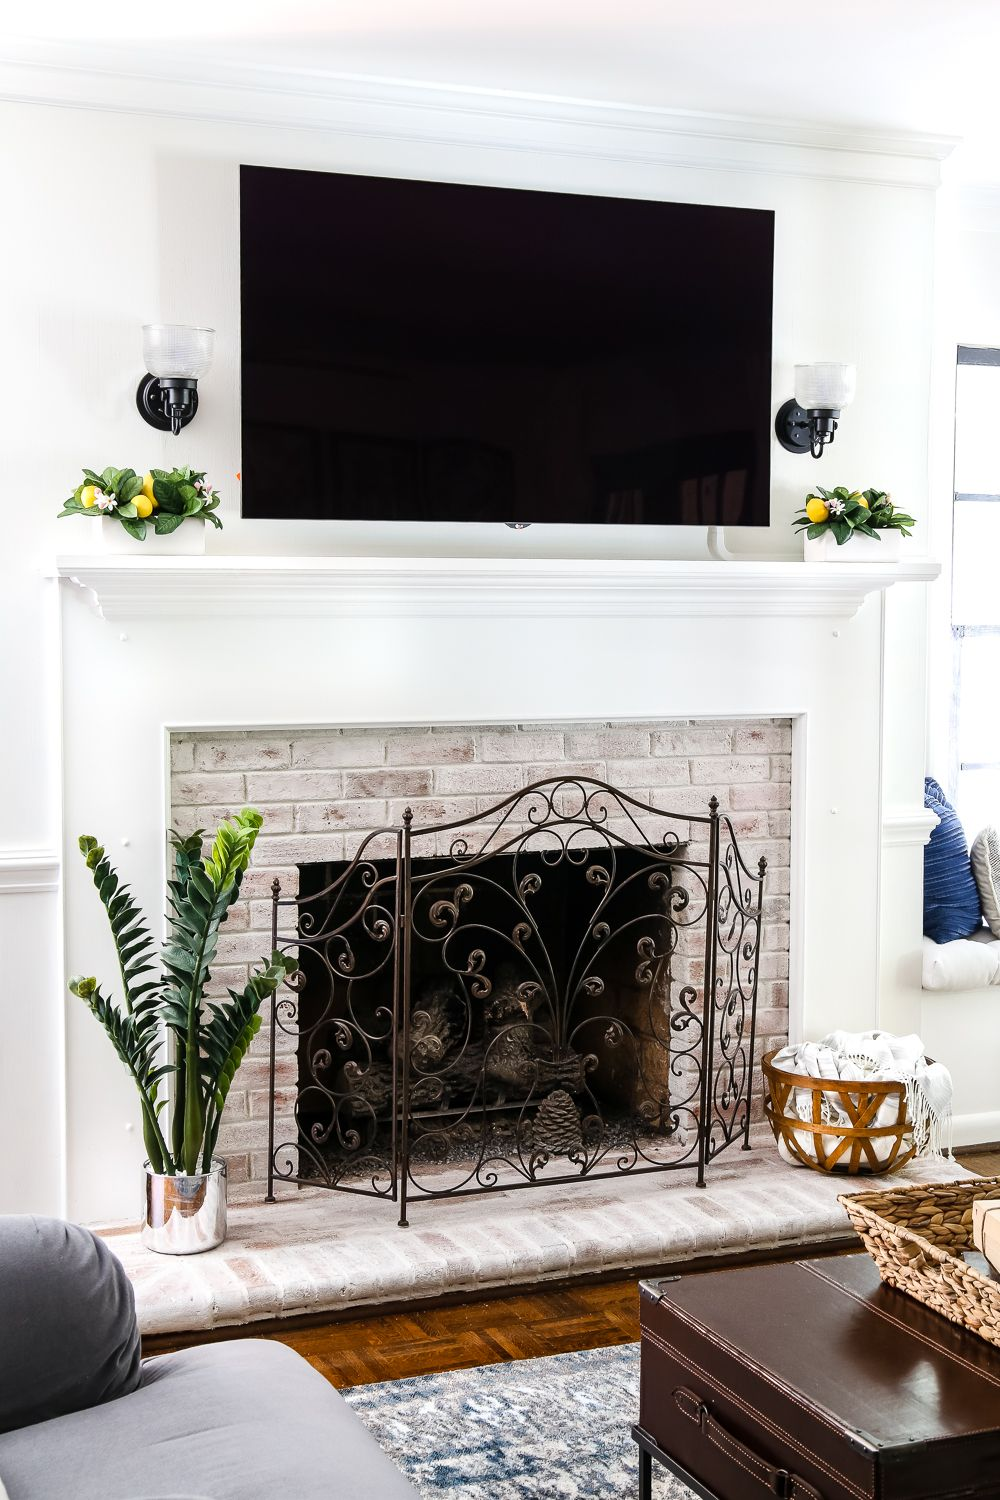 Diy lime washed brick fireplace marcos diy lime washed brick fireplace blesser house solutioingenieria Gallery